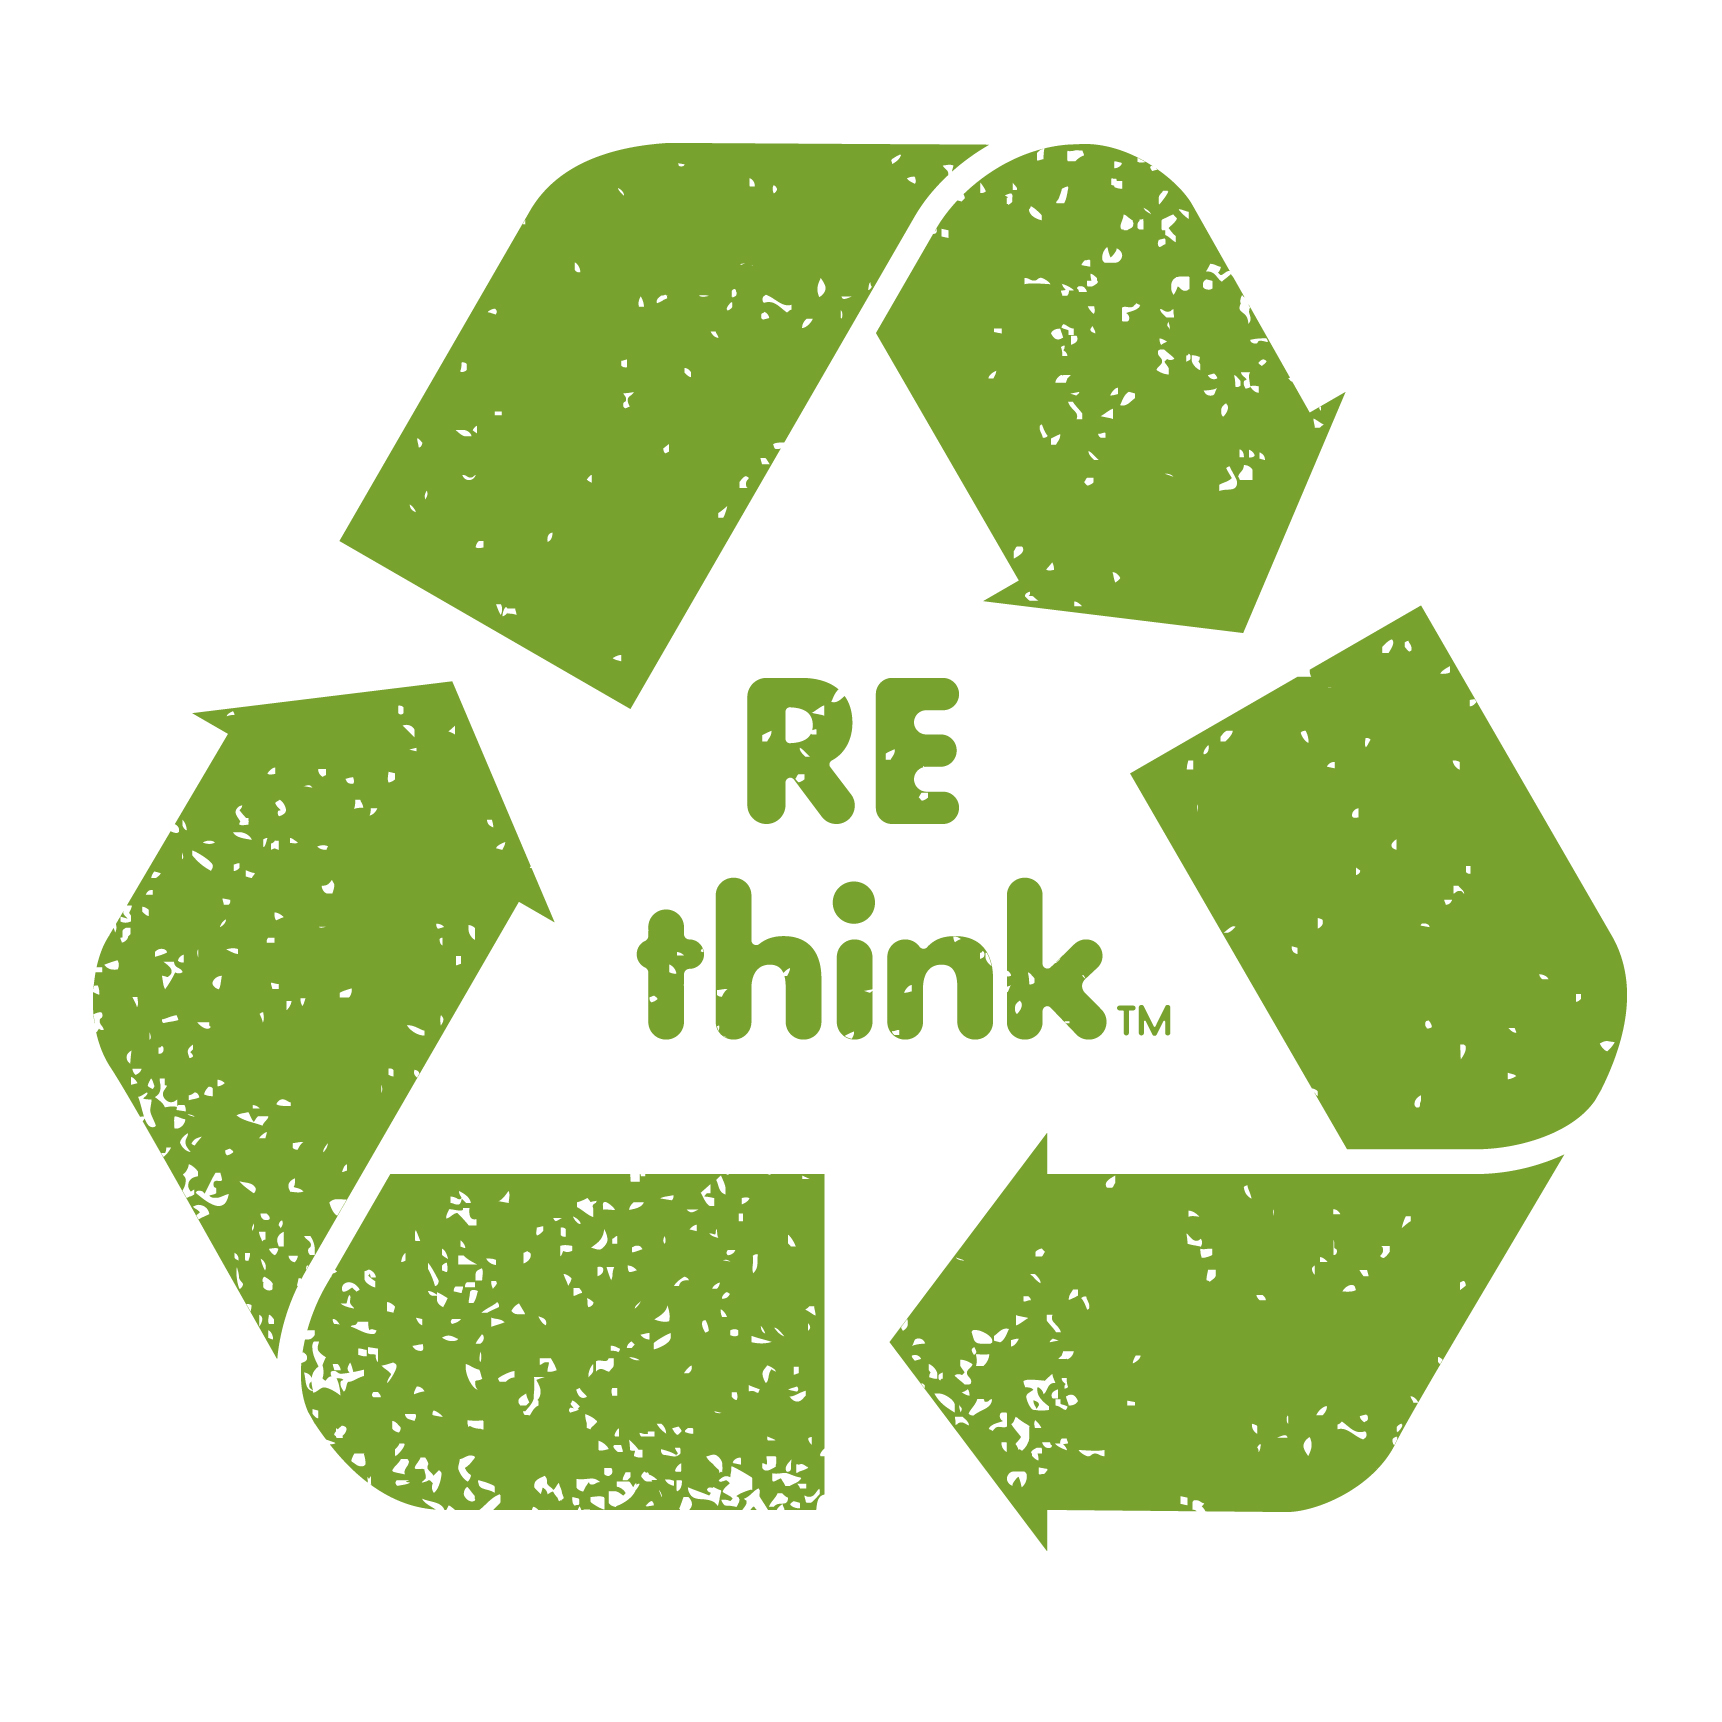 Reduce Reuse Recycle Logo N19 free image.